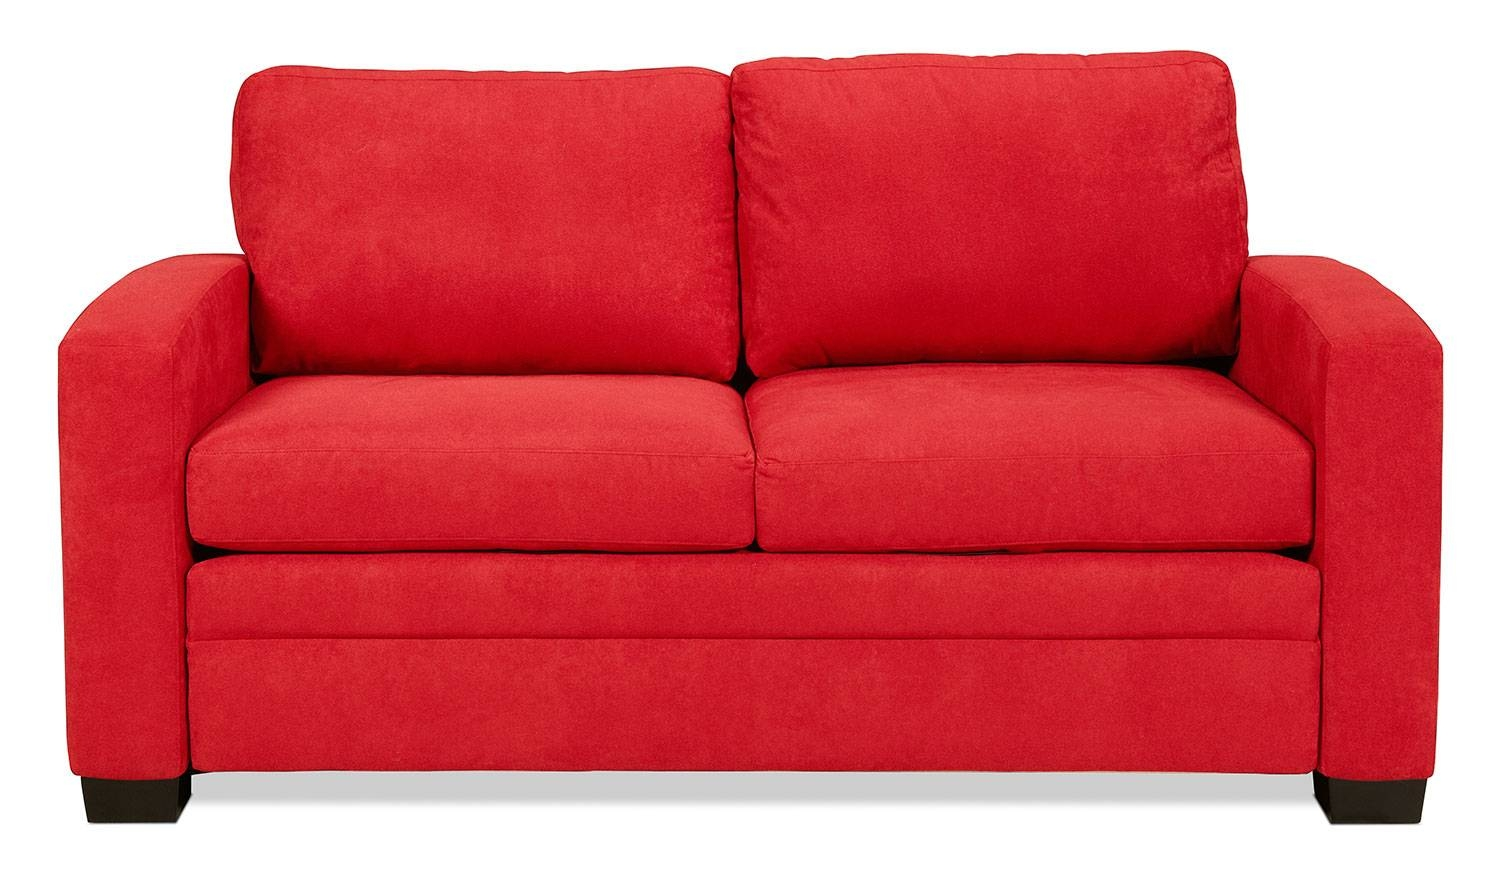 Levin Signature Full Sleeper Sofa - Chili Red | Levin Furniture within Red Sleeper Sofa (Image 12 of 30)